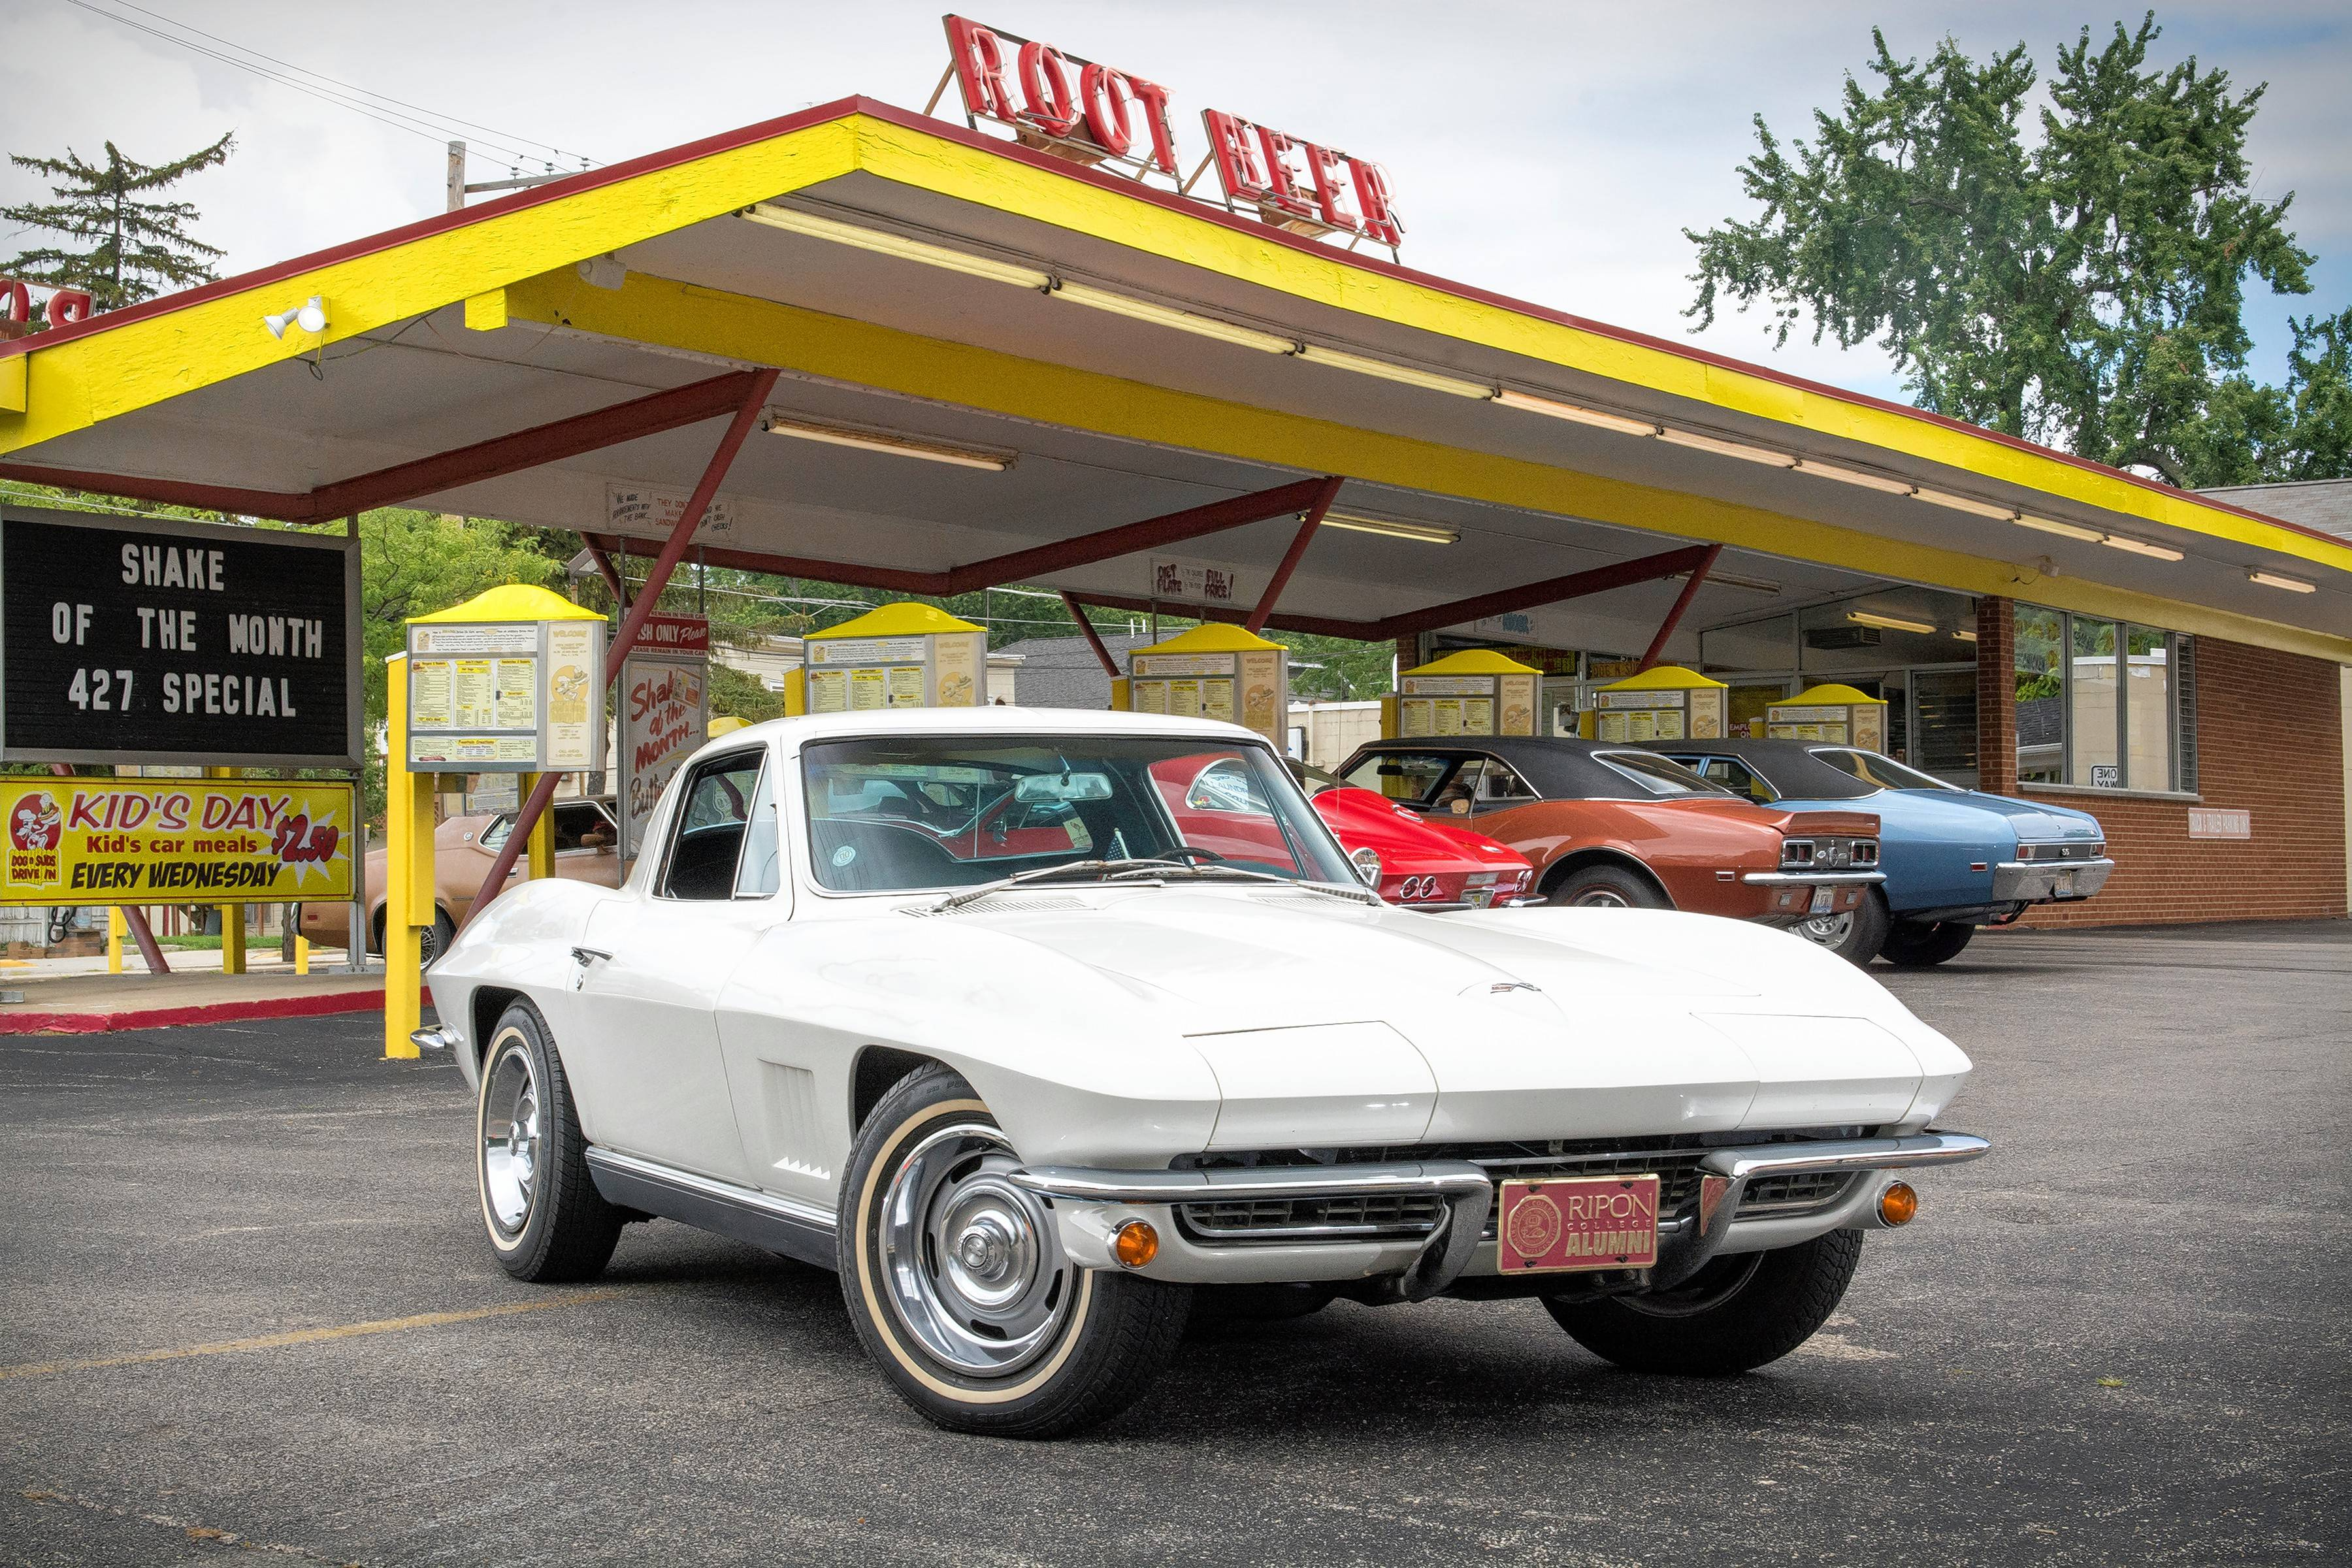 Old Cars For Sale Near Me Elegant Used Car Near Me With Old Cars - Awesome old cars for sale